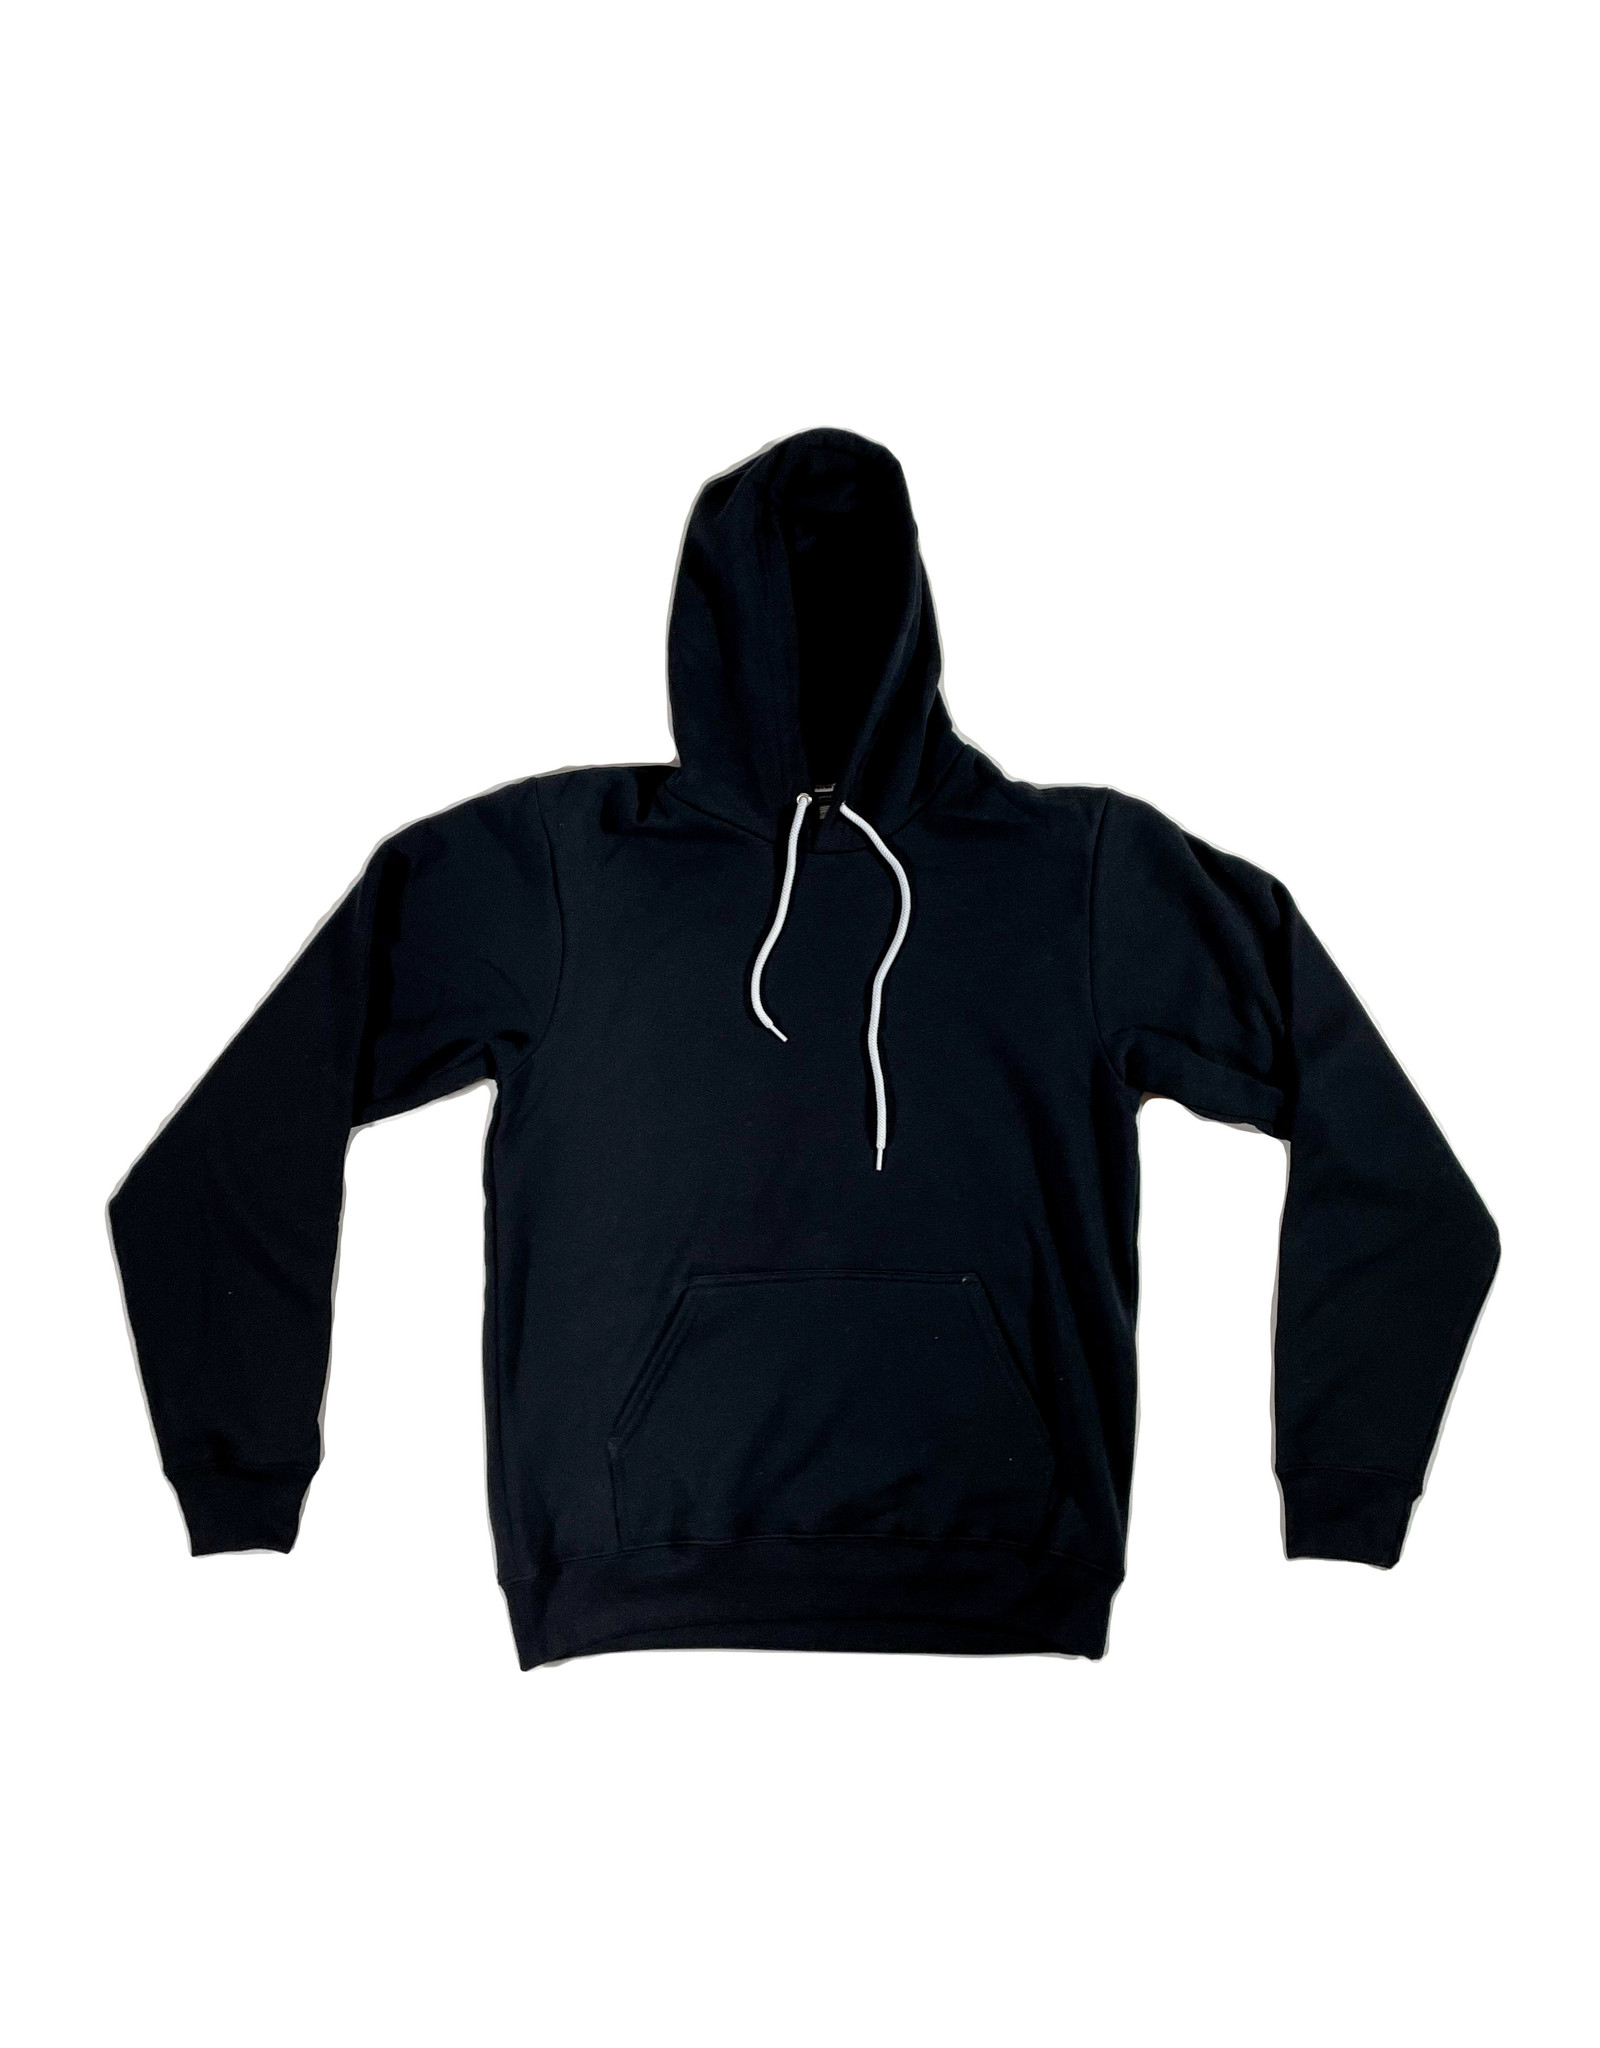 KINGSWELL KINGSWELL ORIGINALS HOODIE - BLACK